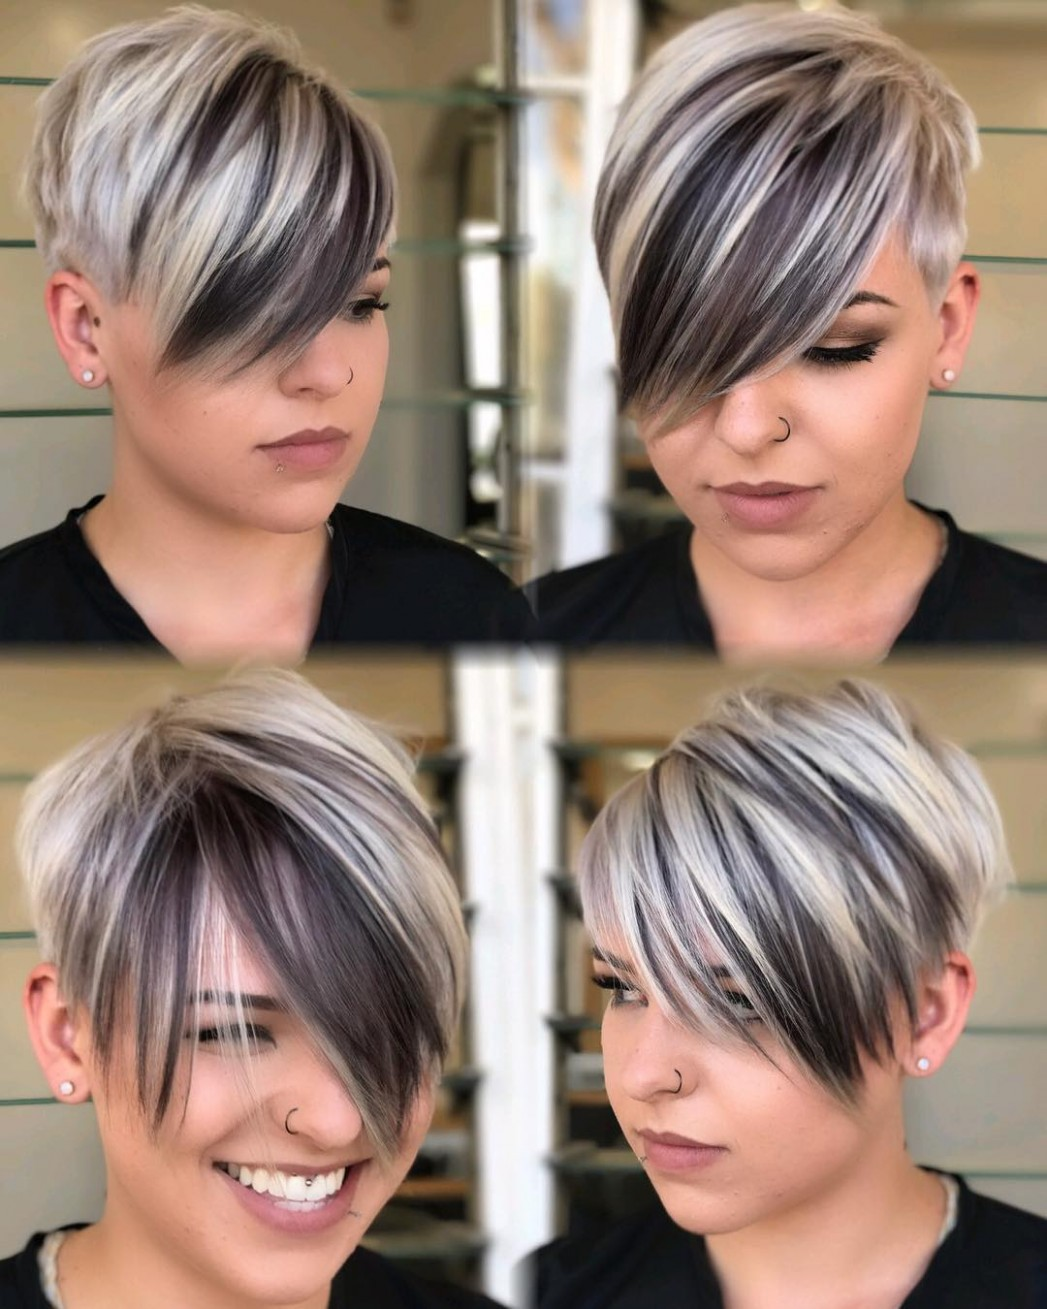 8 Short Hairstyles For Round Faces With Slimming Effect Hadviser Pixie Cut For Thin Hair Round Face